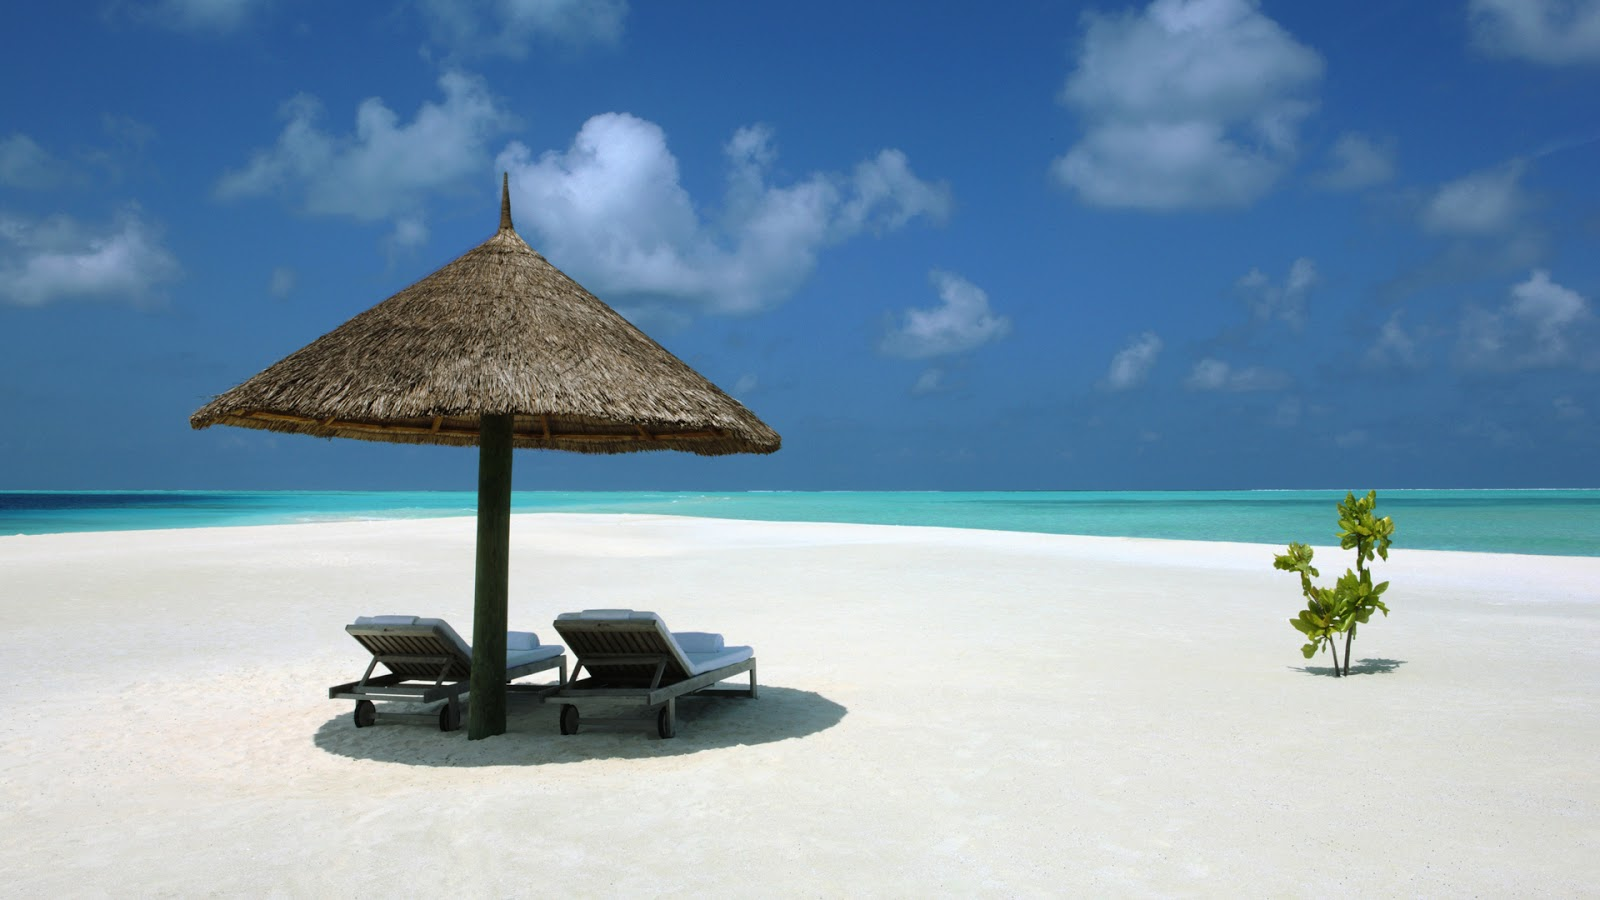 Cocoa Island Resort Maldives 28 Pic Awesome Pictures